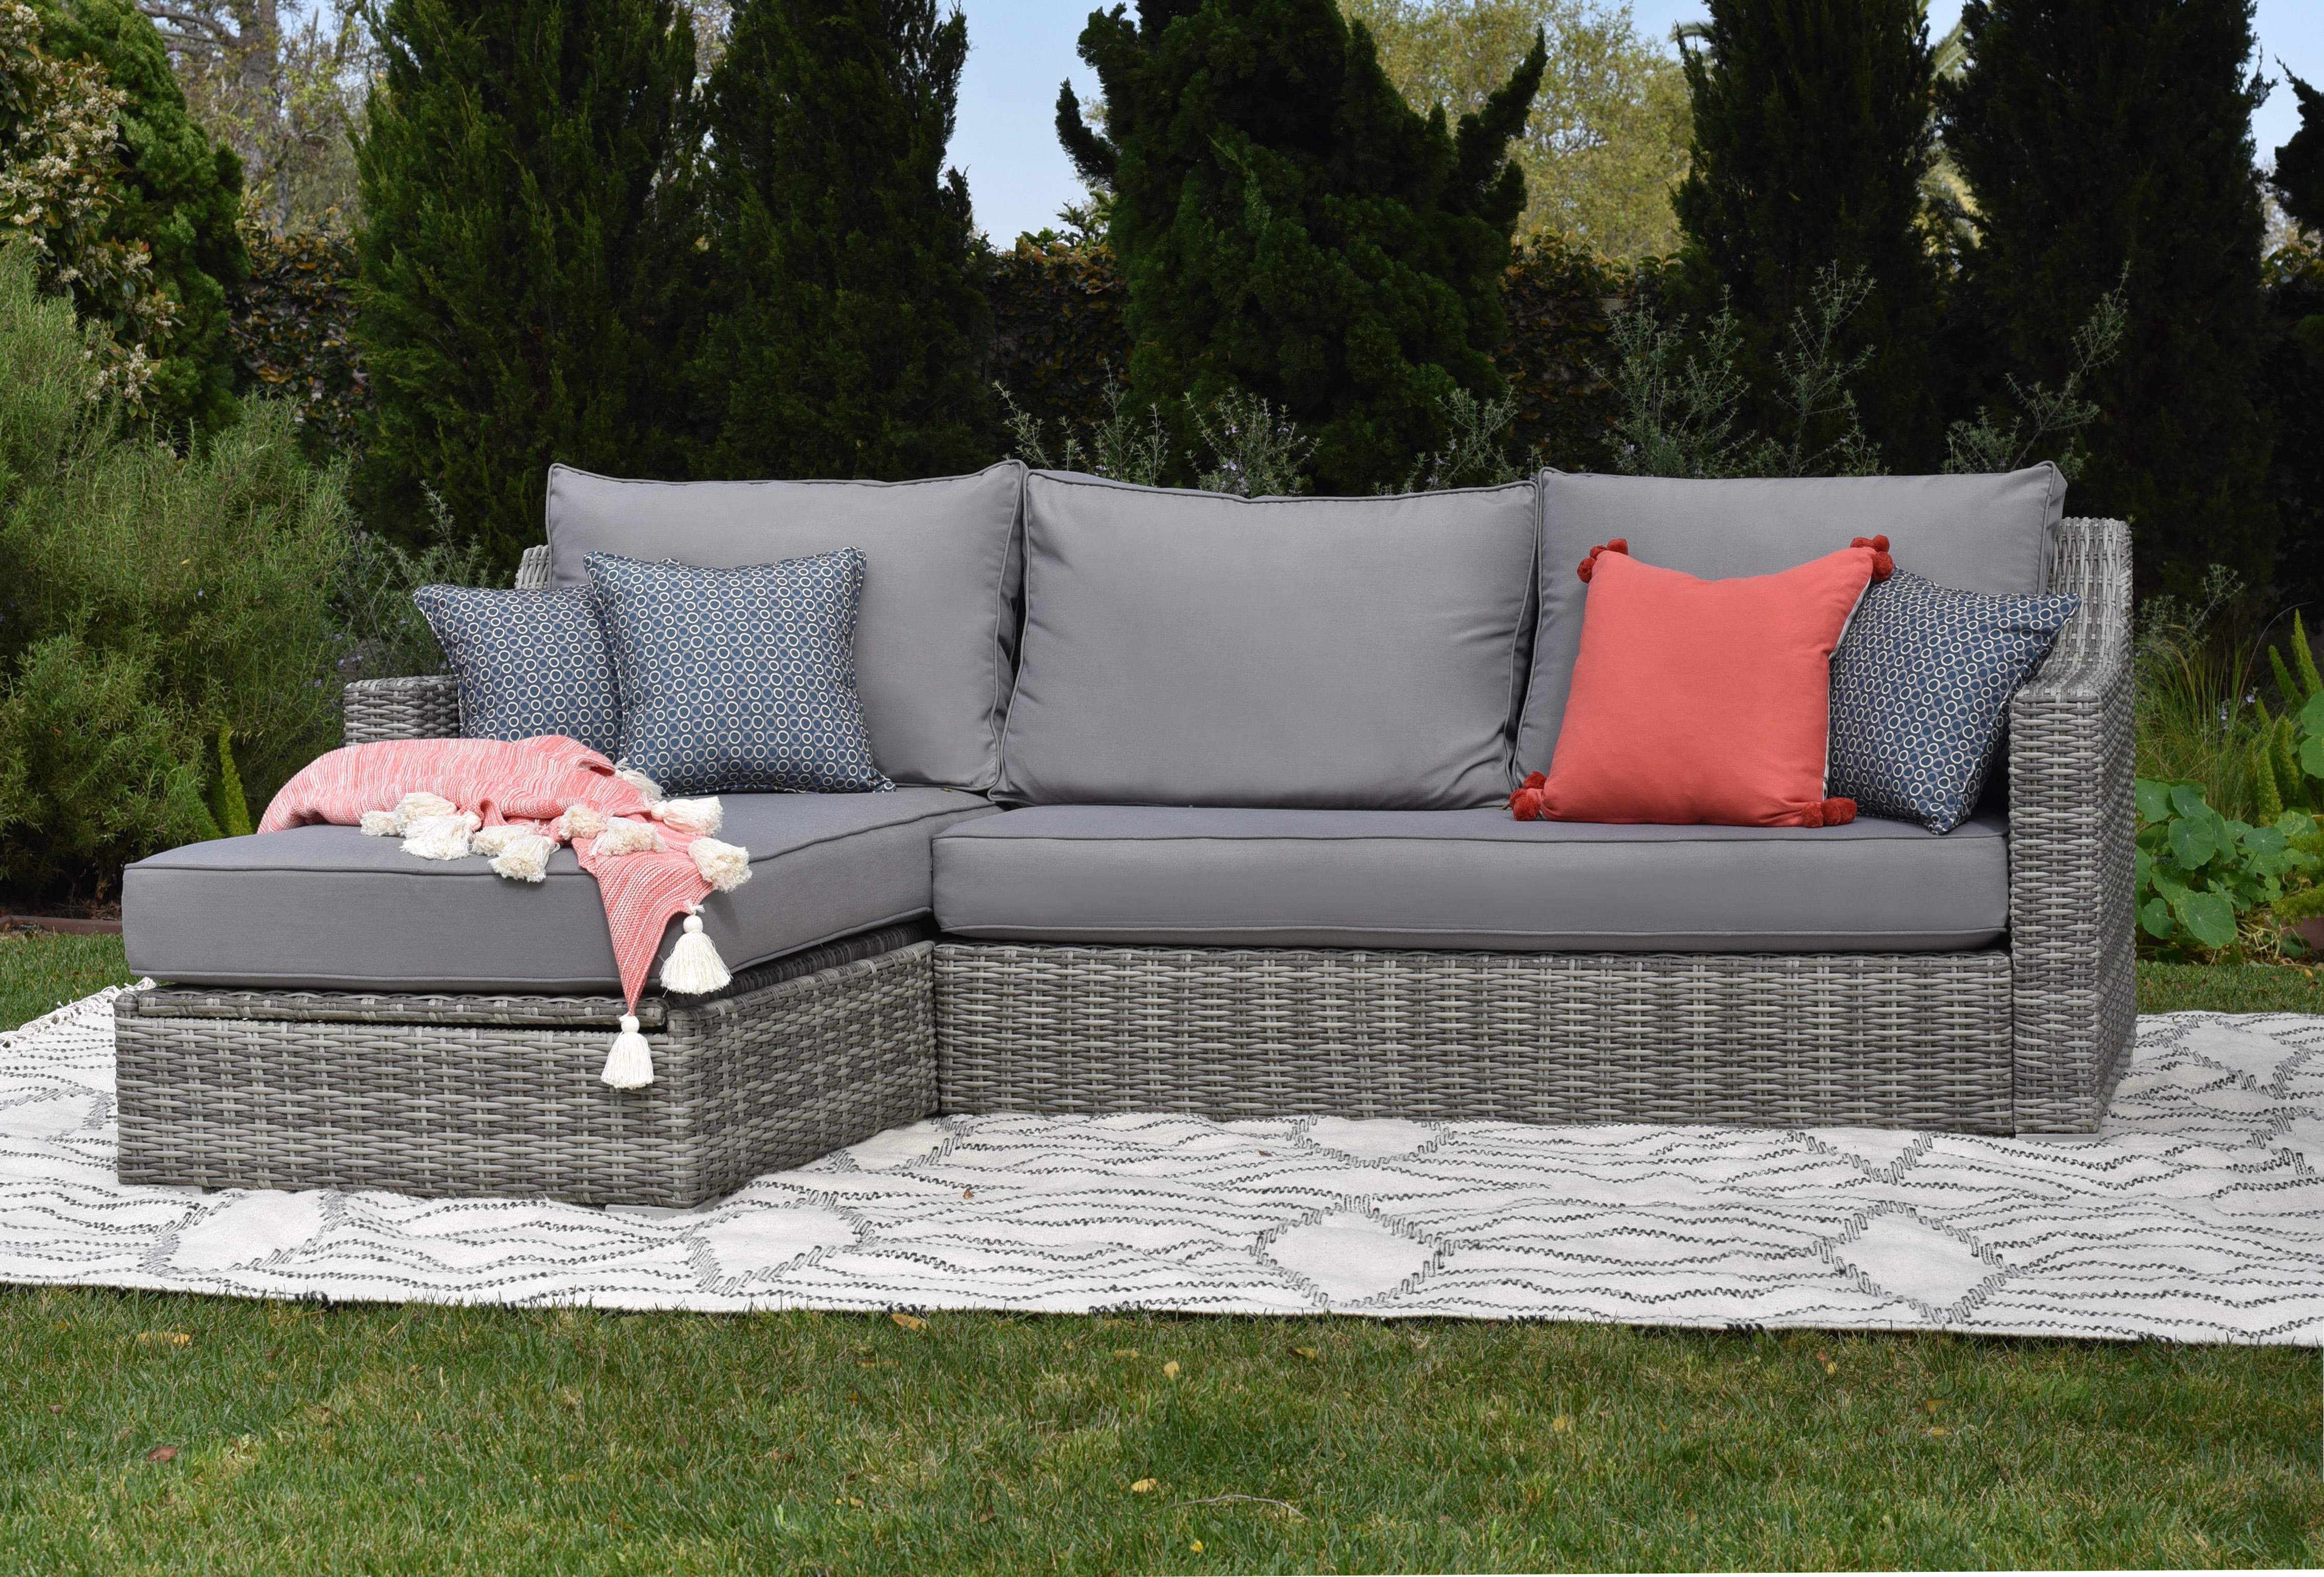 Vallauris Sofa With Cushions Intended For Well Liked Vallauris Storage Patio Sectional With Cushions (Gallery 2 of 20)